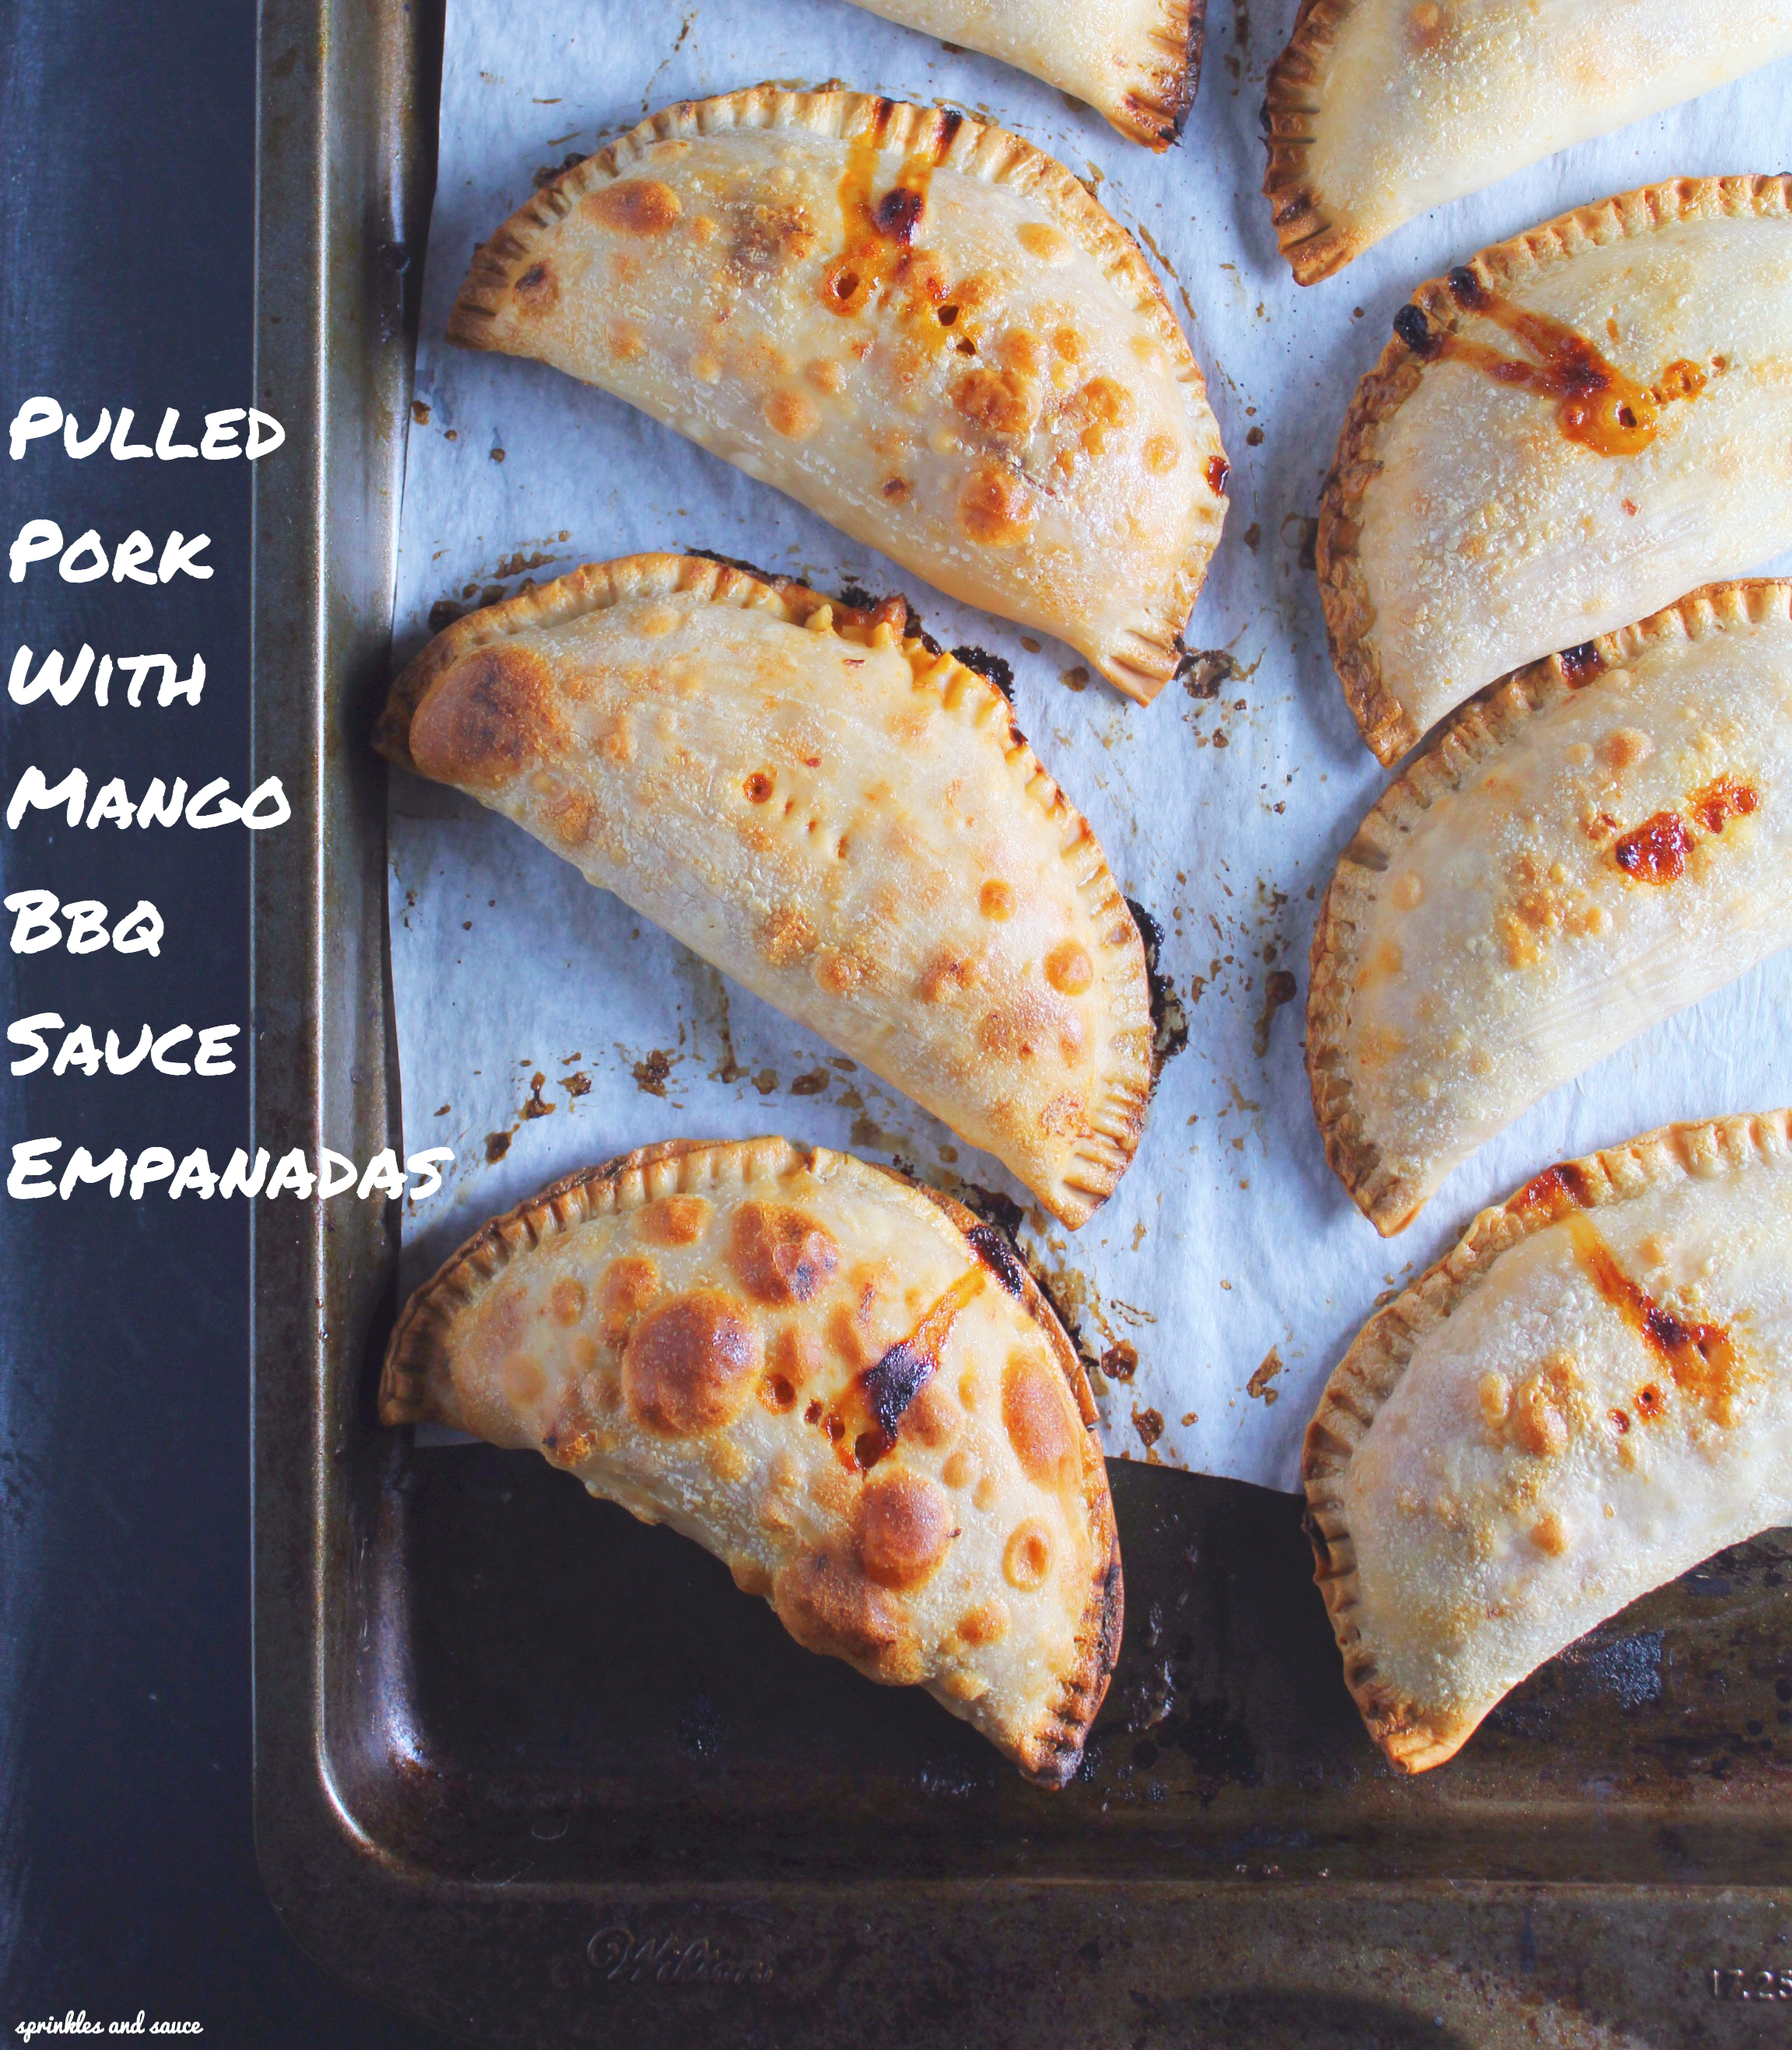 Pulled Pork with Mango Barbeque Sauce Empanadas